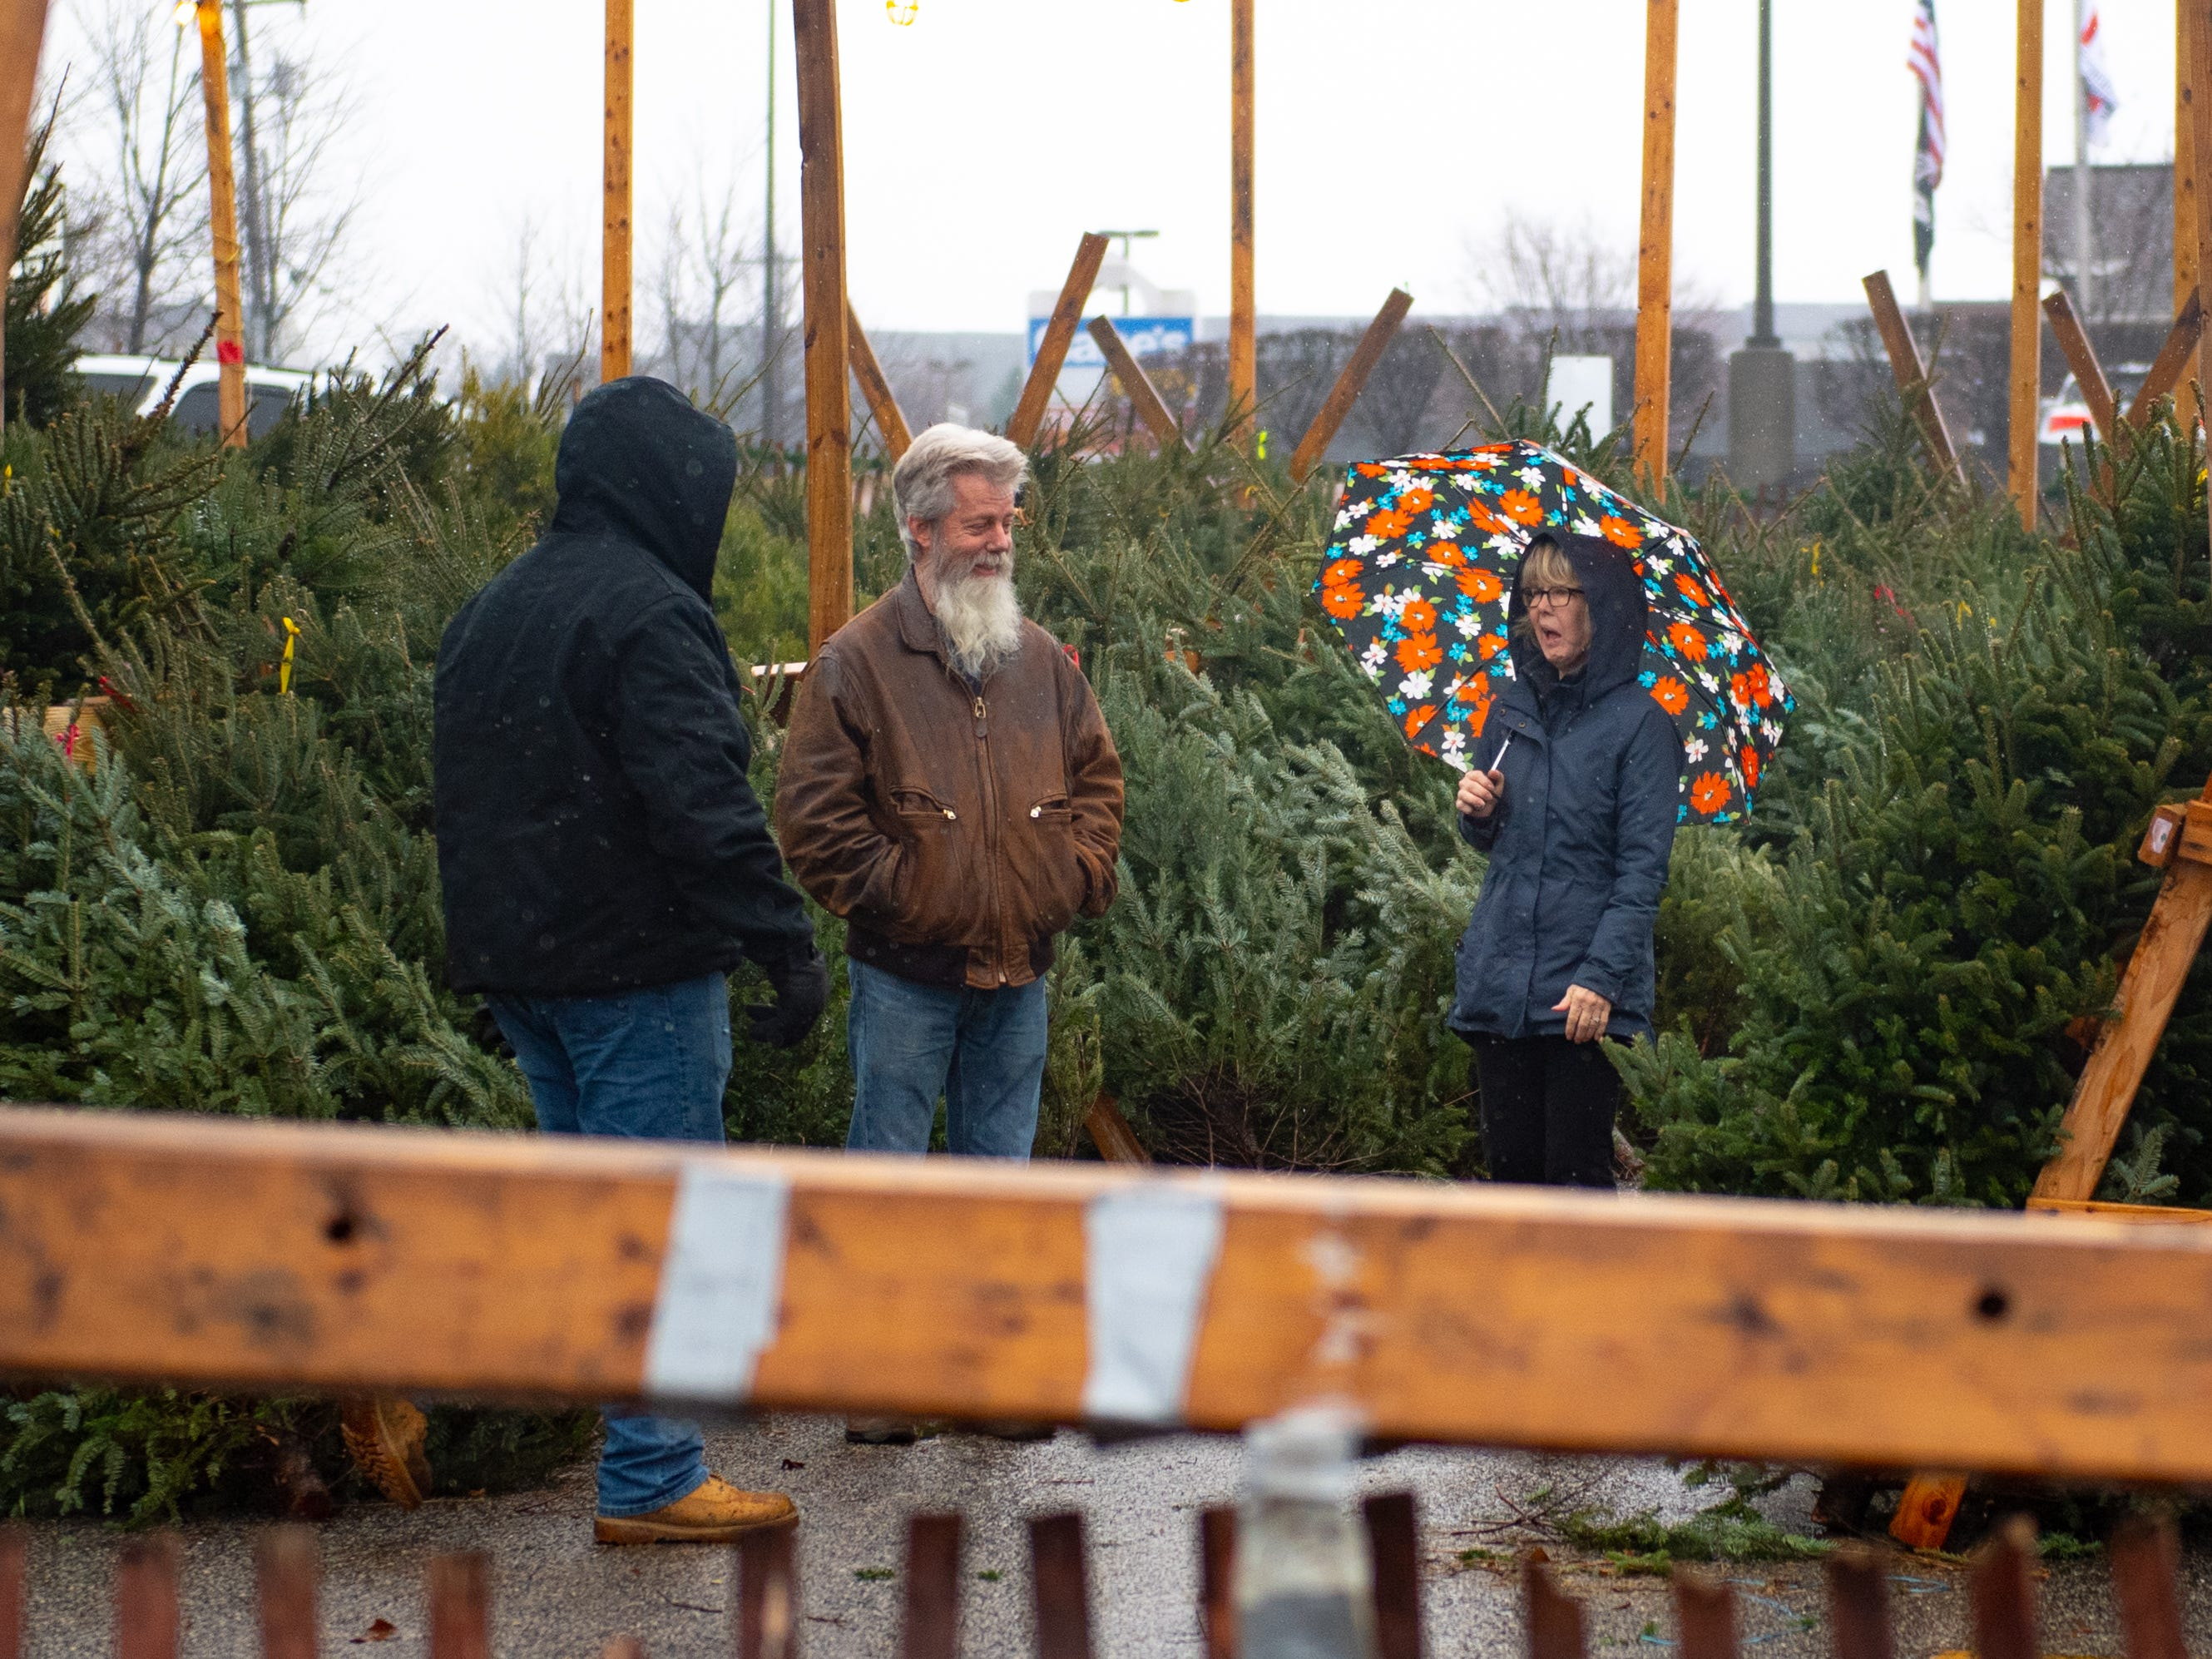 Around 100 trees are sold each week despite the wet weather that's been hitting York. Either way, customers are eager to select a tree, Saturday, December 15, 2018.